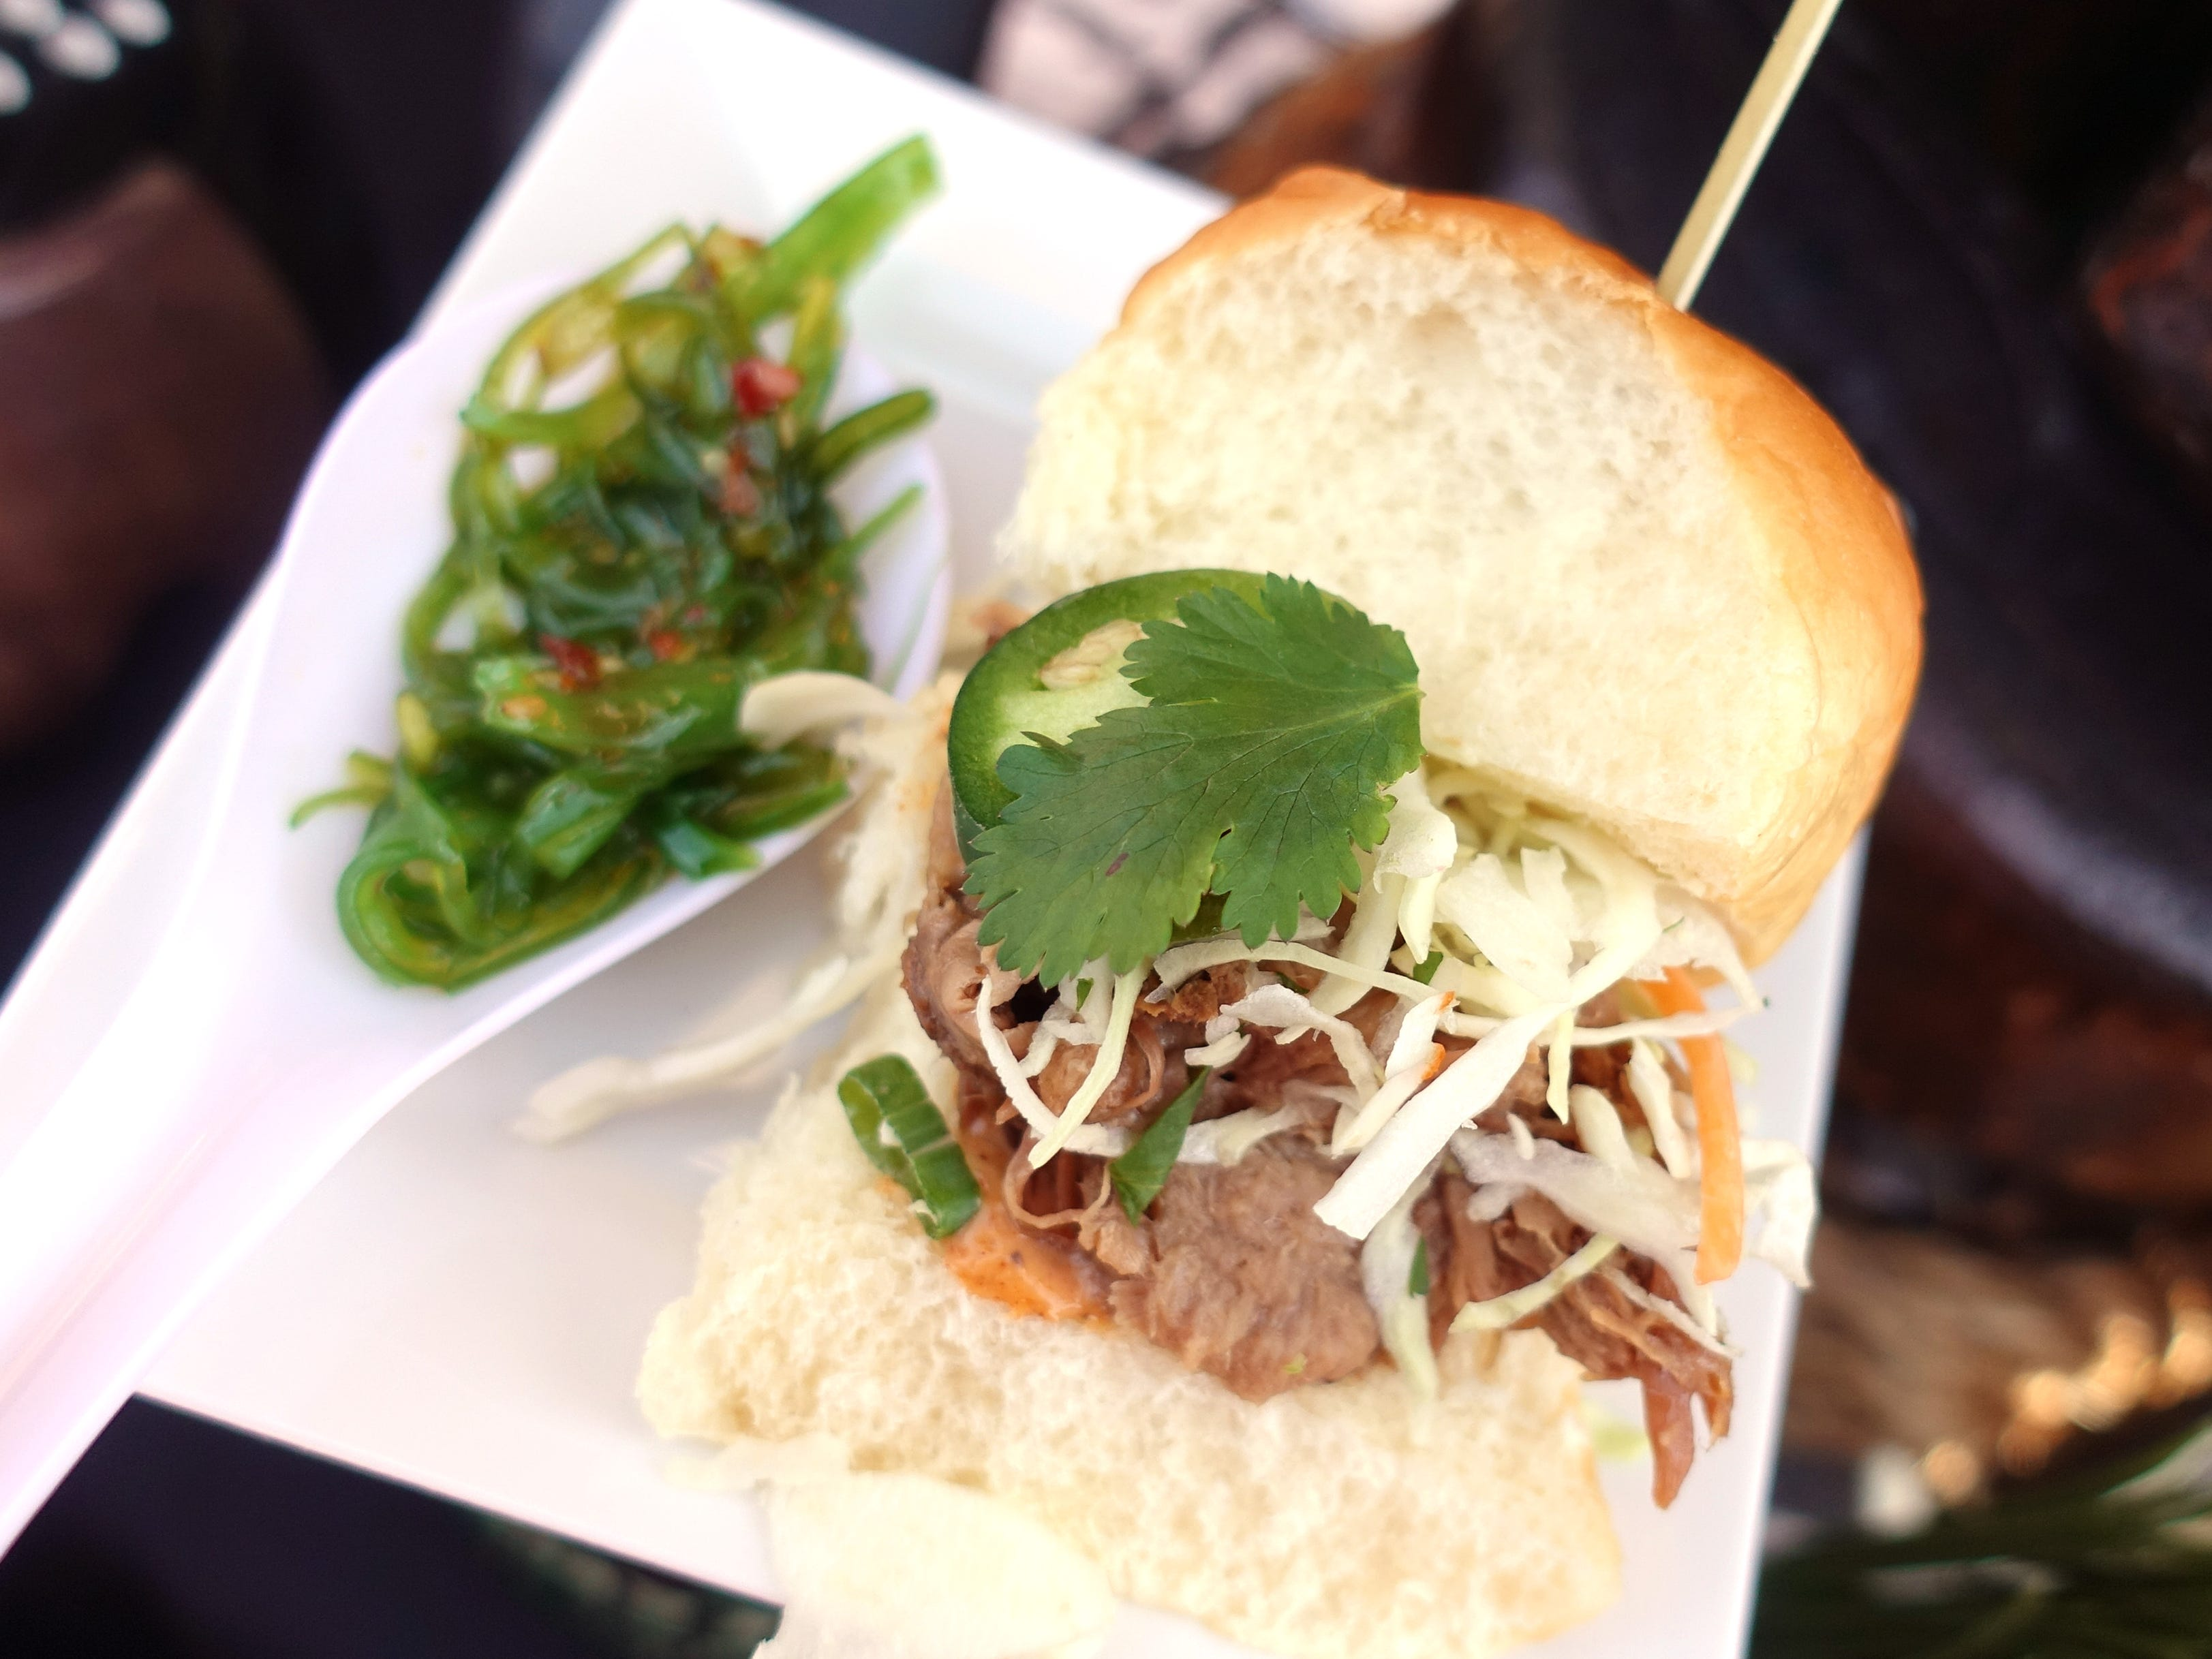 Hilo slider with luau pork, Asian slaw, cilantro, jalapeno, chile lime aioli, Sriracha, Hawaiian bun and spicy seaweed salad from Hula's Modern Tiki at the 2019 Devour Culinary Classic at the Desert Botanical Garden in Phoenix.